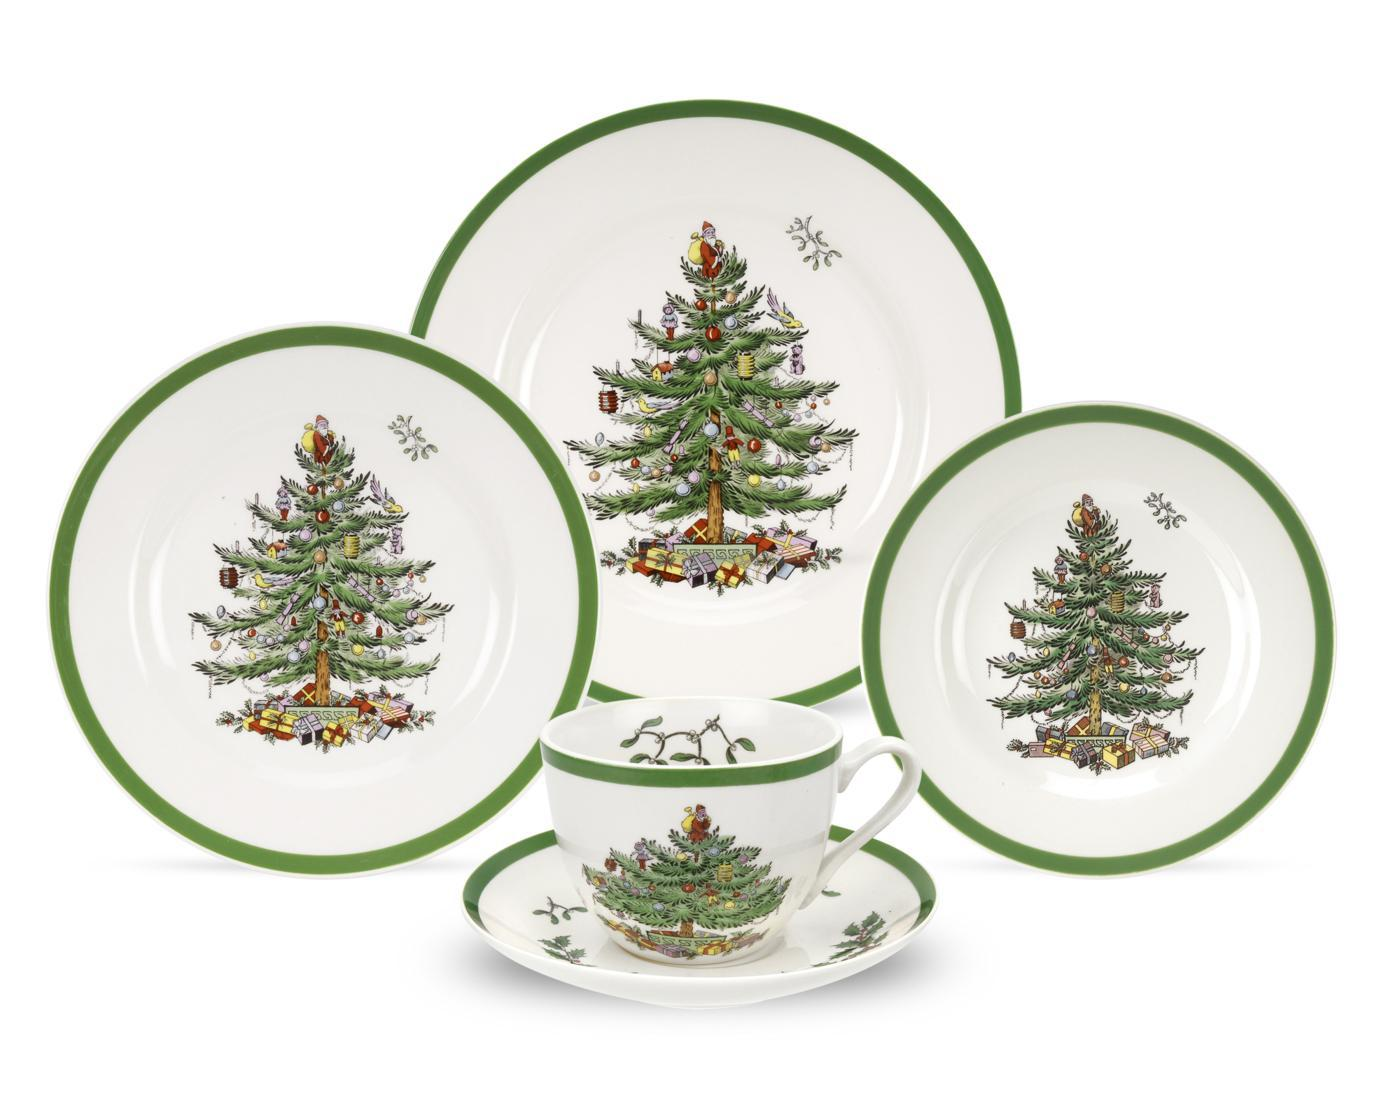 Spode Christmas Tree 5-Piece Placesetting image number 0